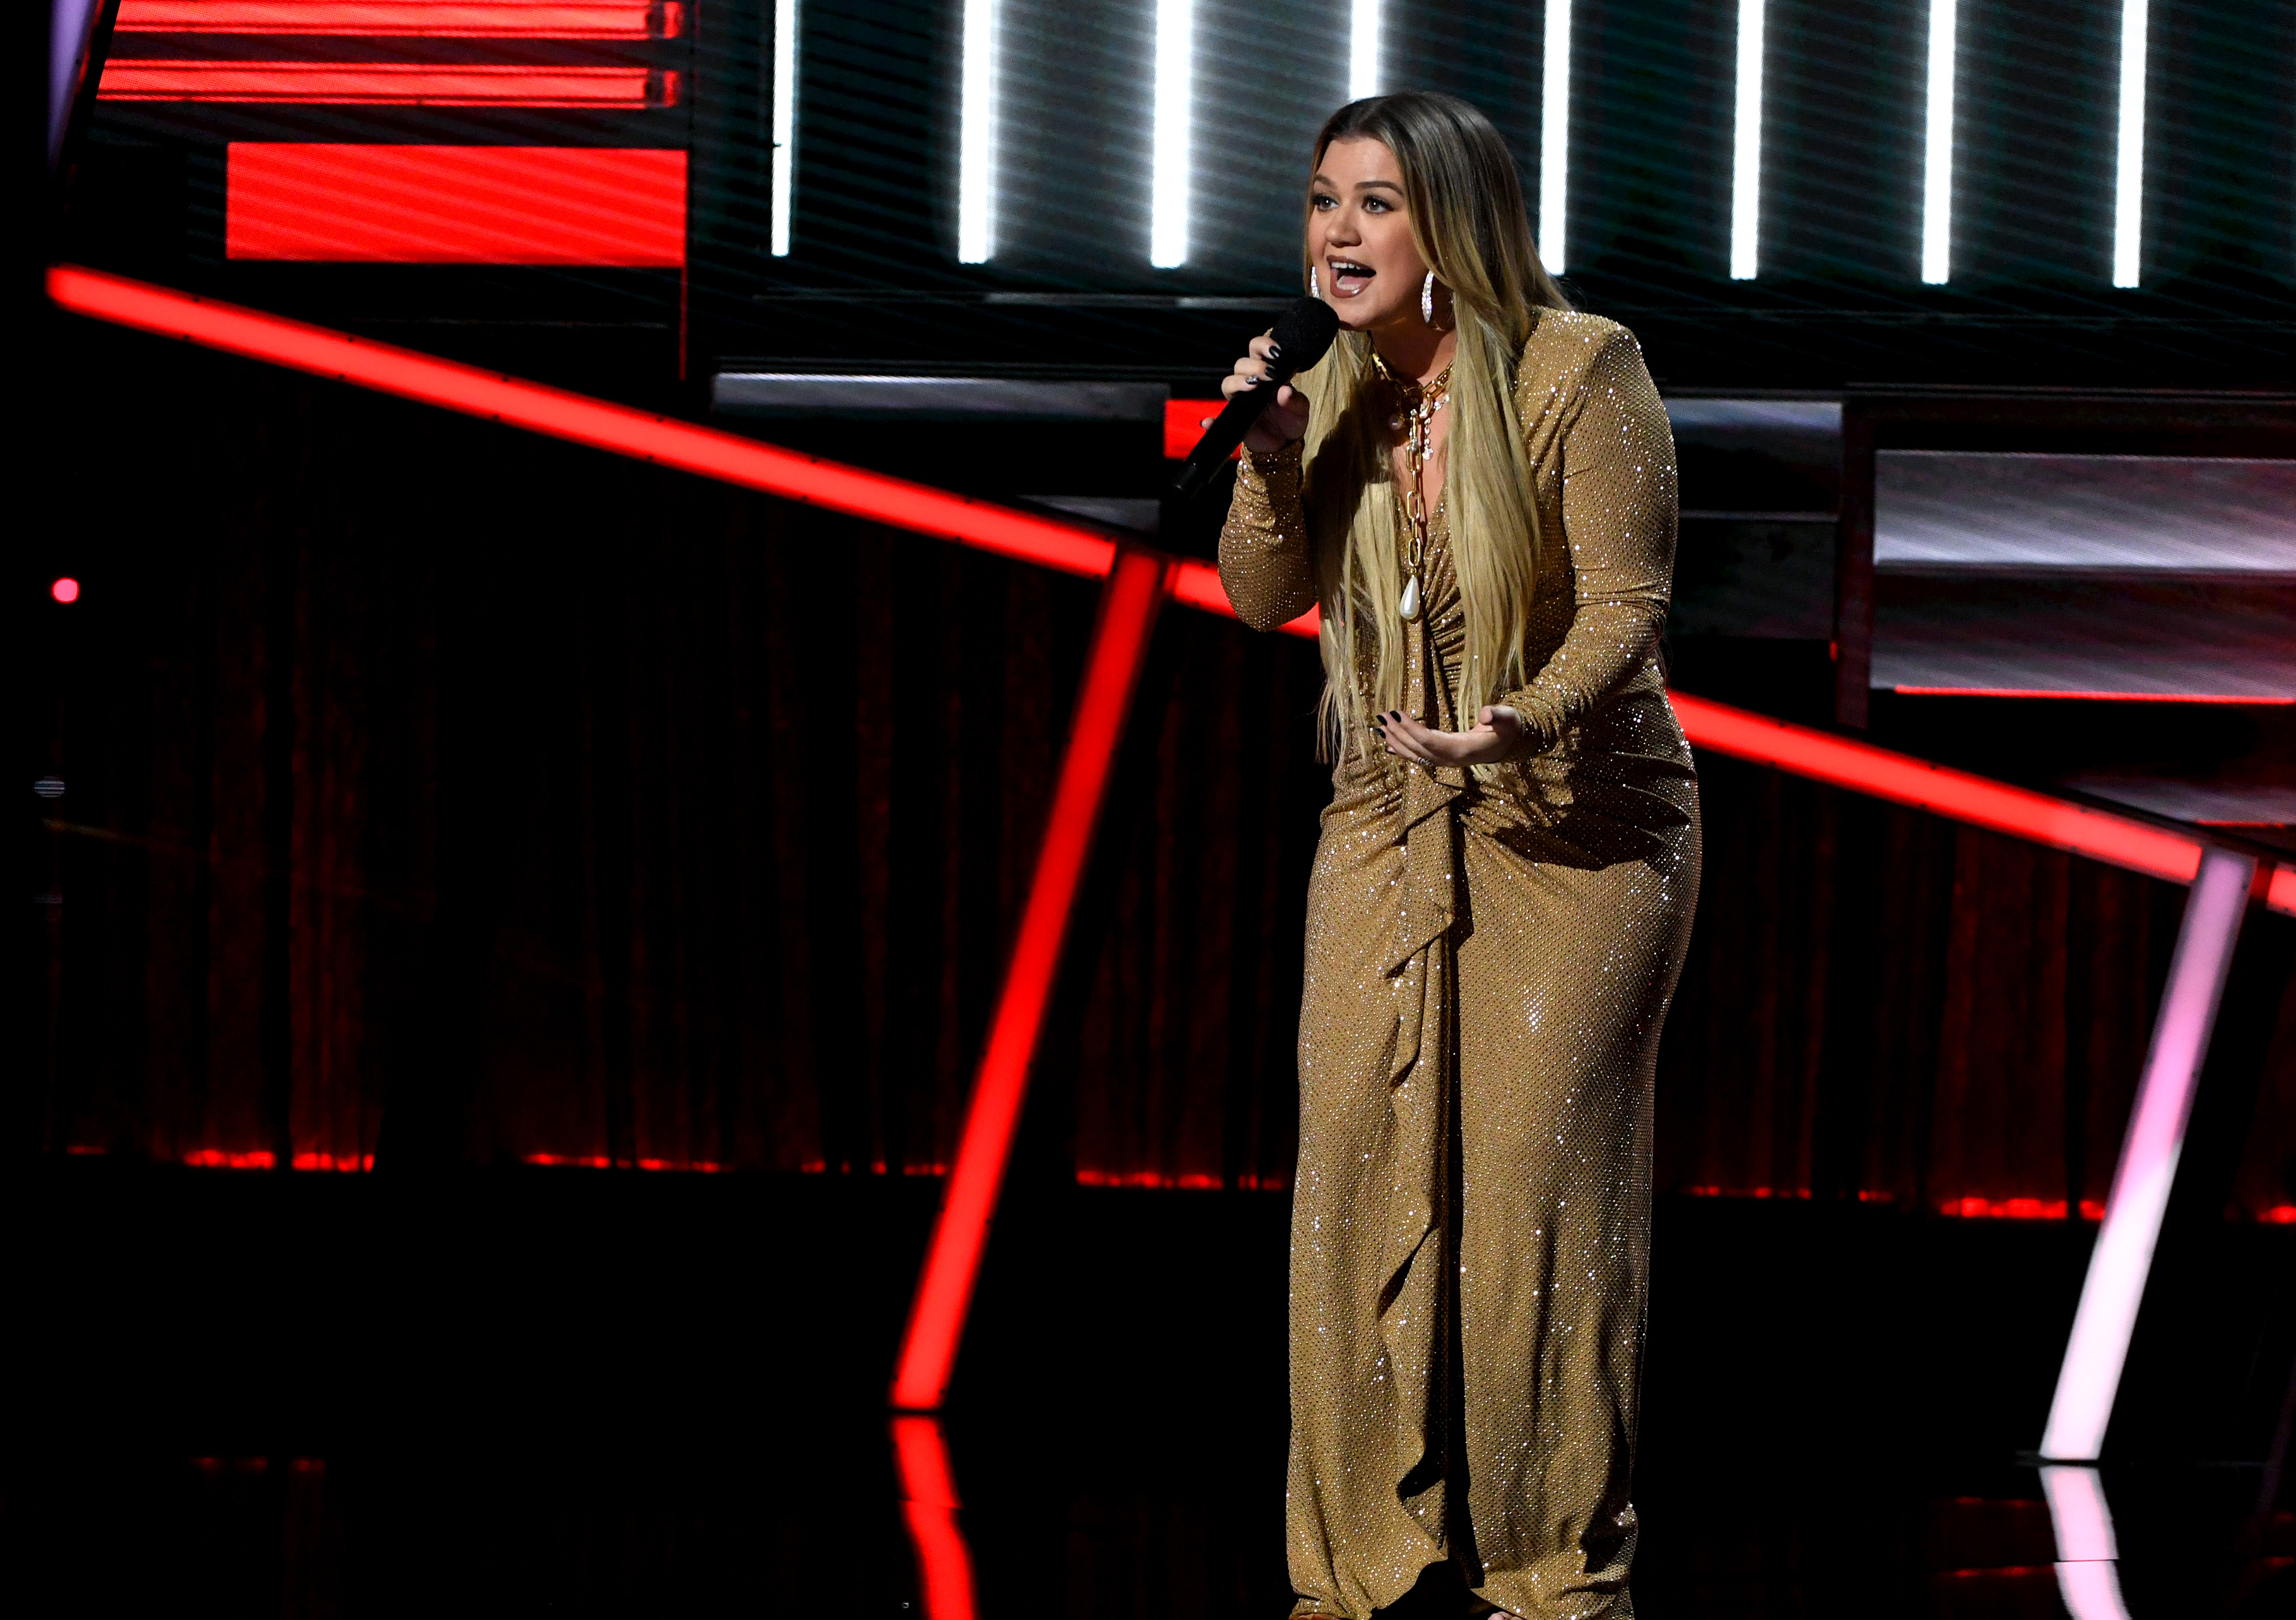 A Voice Coach Is One of the Presenters at the 2020 CMT Awards